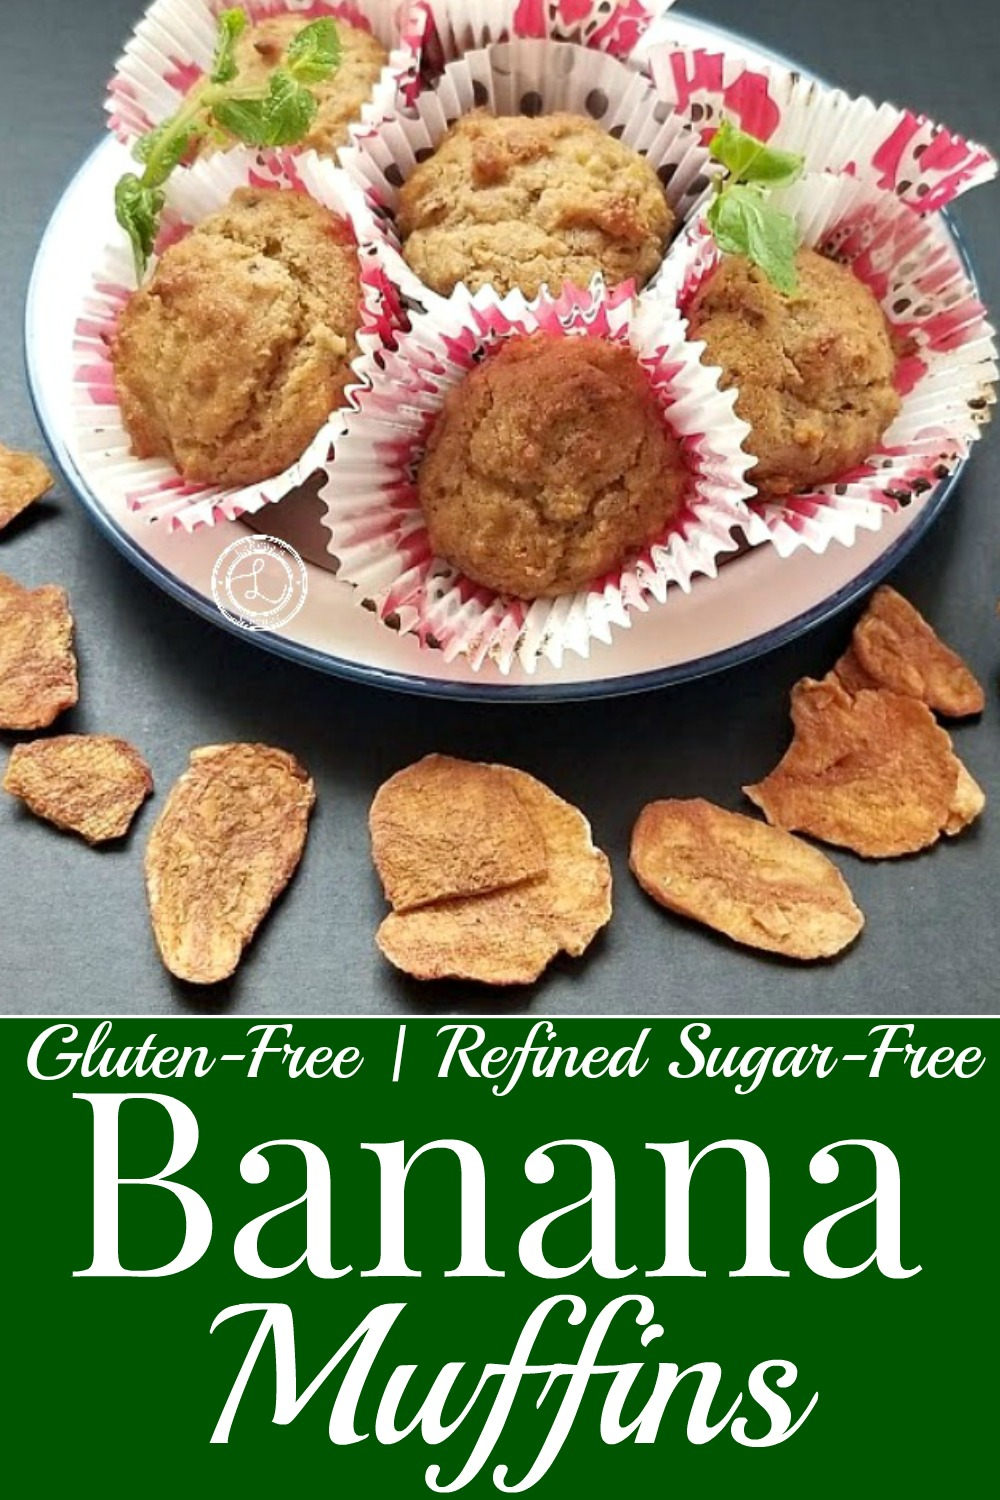 Banana Muffins with banana cinnamon chips and mint sprigs